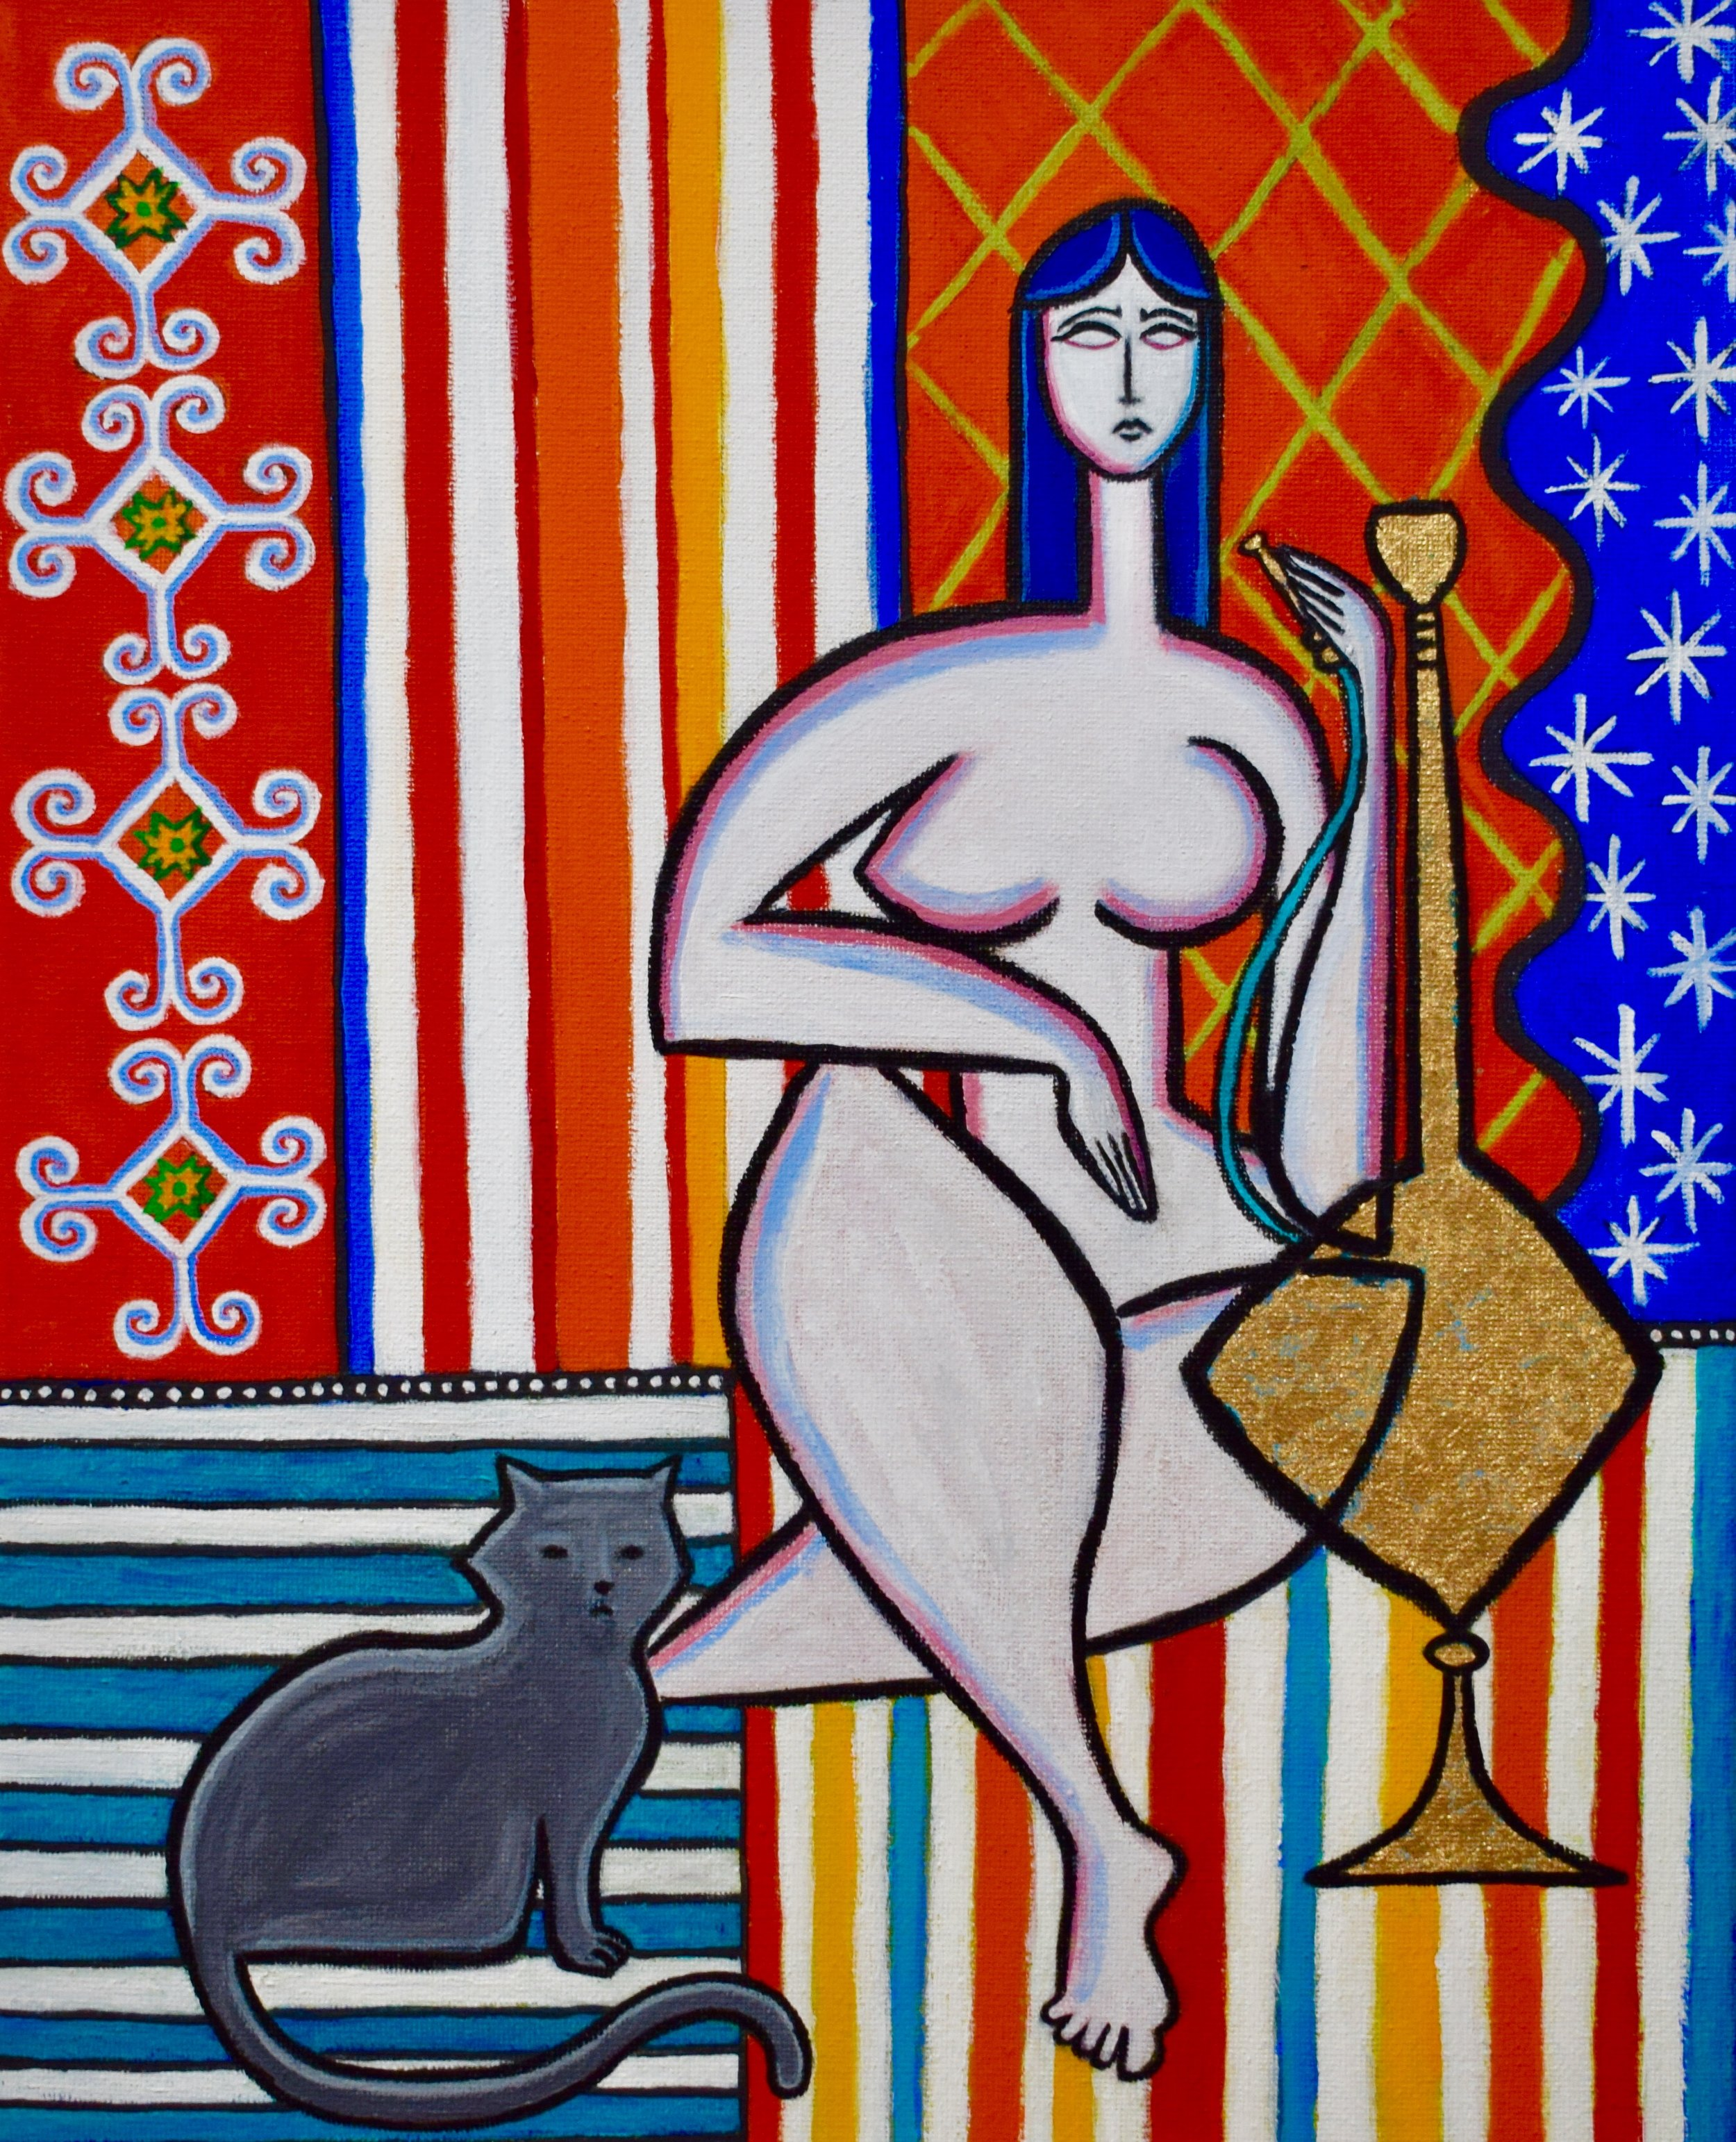 odalisque-with-gray-cat-painting-paul-zepeda-wet-paint-nyc.jpg